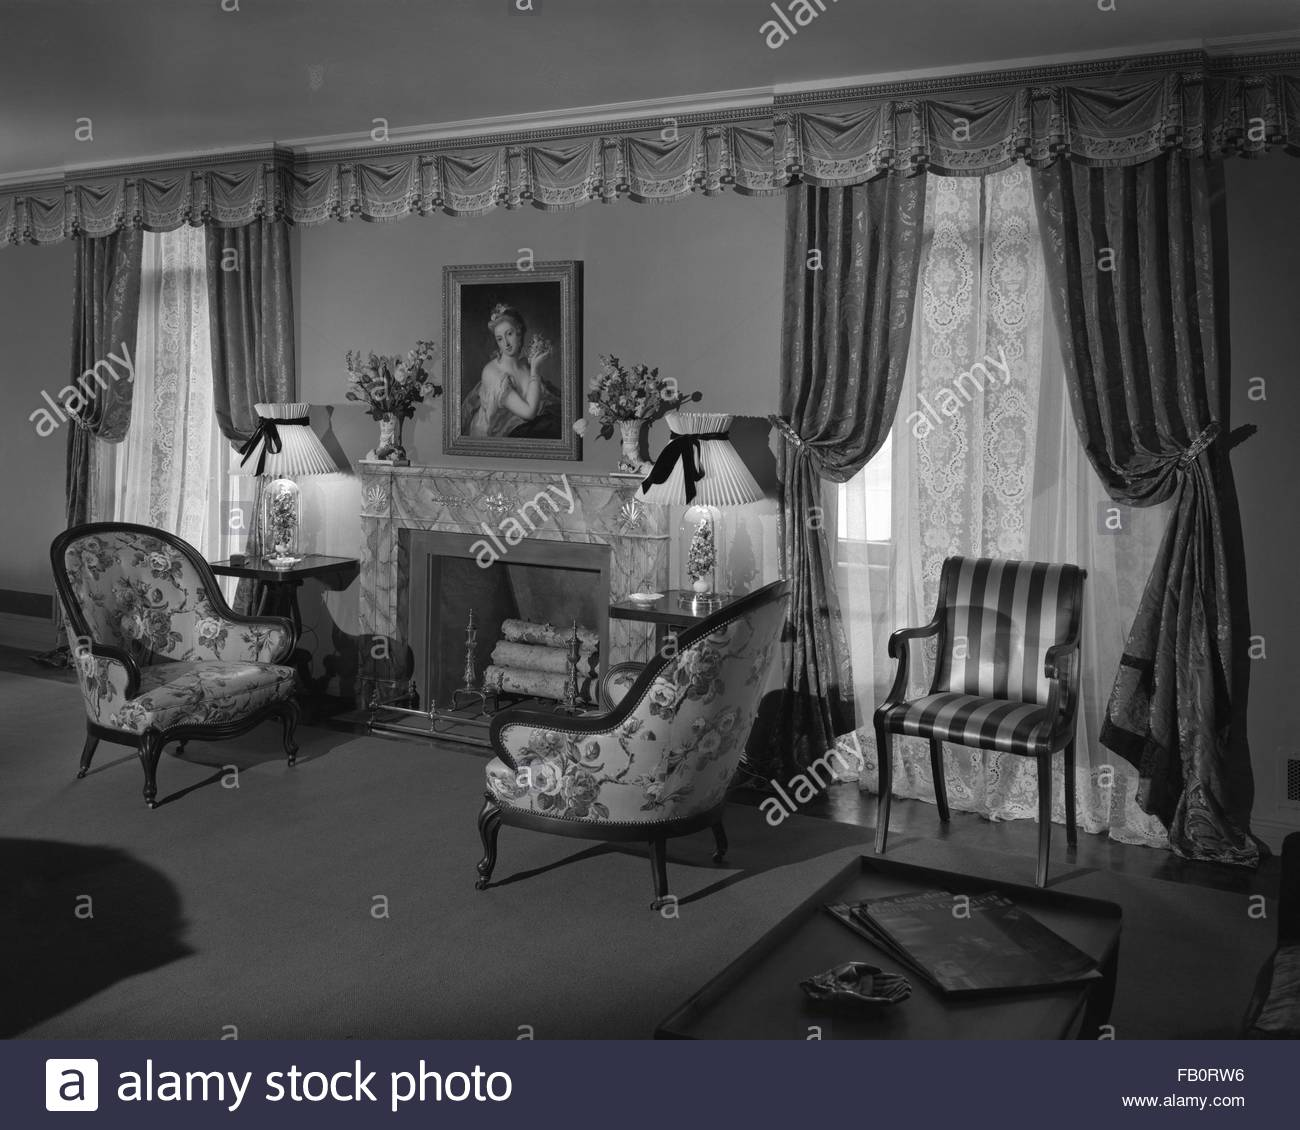 Trend House At Marshall Field And Company, 1940 Apr. 1. Formal Living Room.